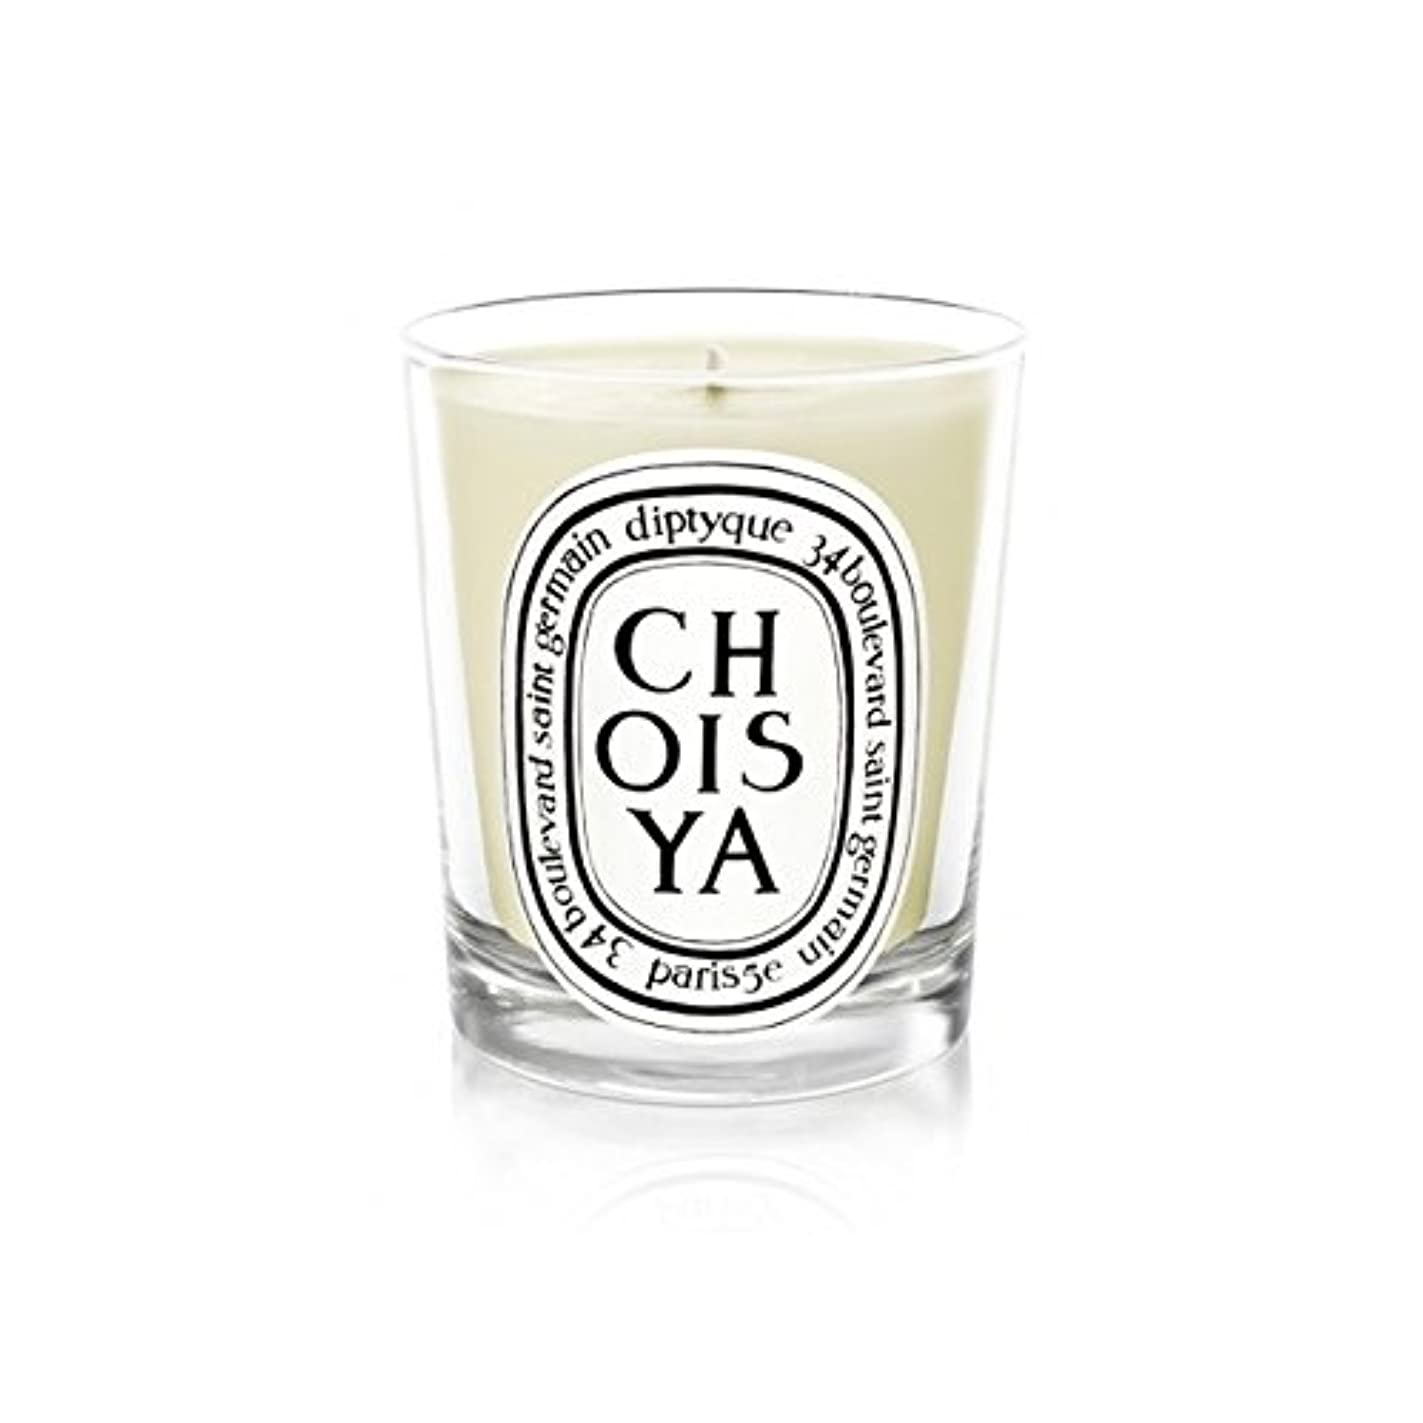 Diptyque Candle Choisya / Mexican Orange Blossom 190g (Pack of 2) - DiptyqueキャンドルChoisya /メキシコオレンジの花の190グラム (x2...